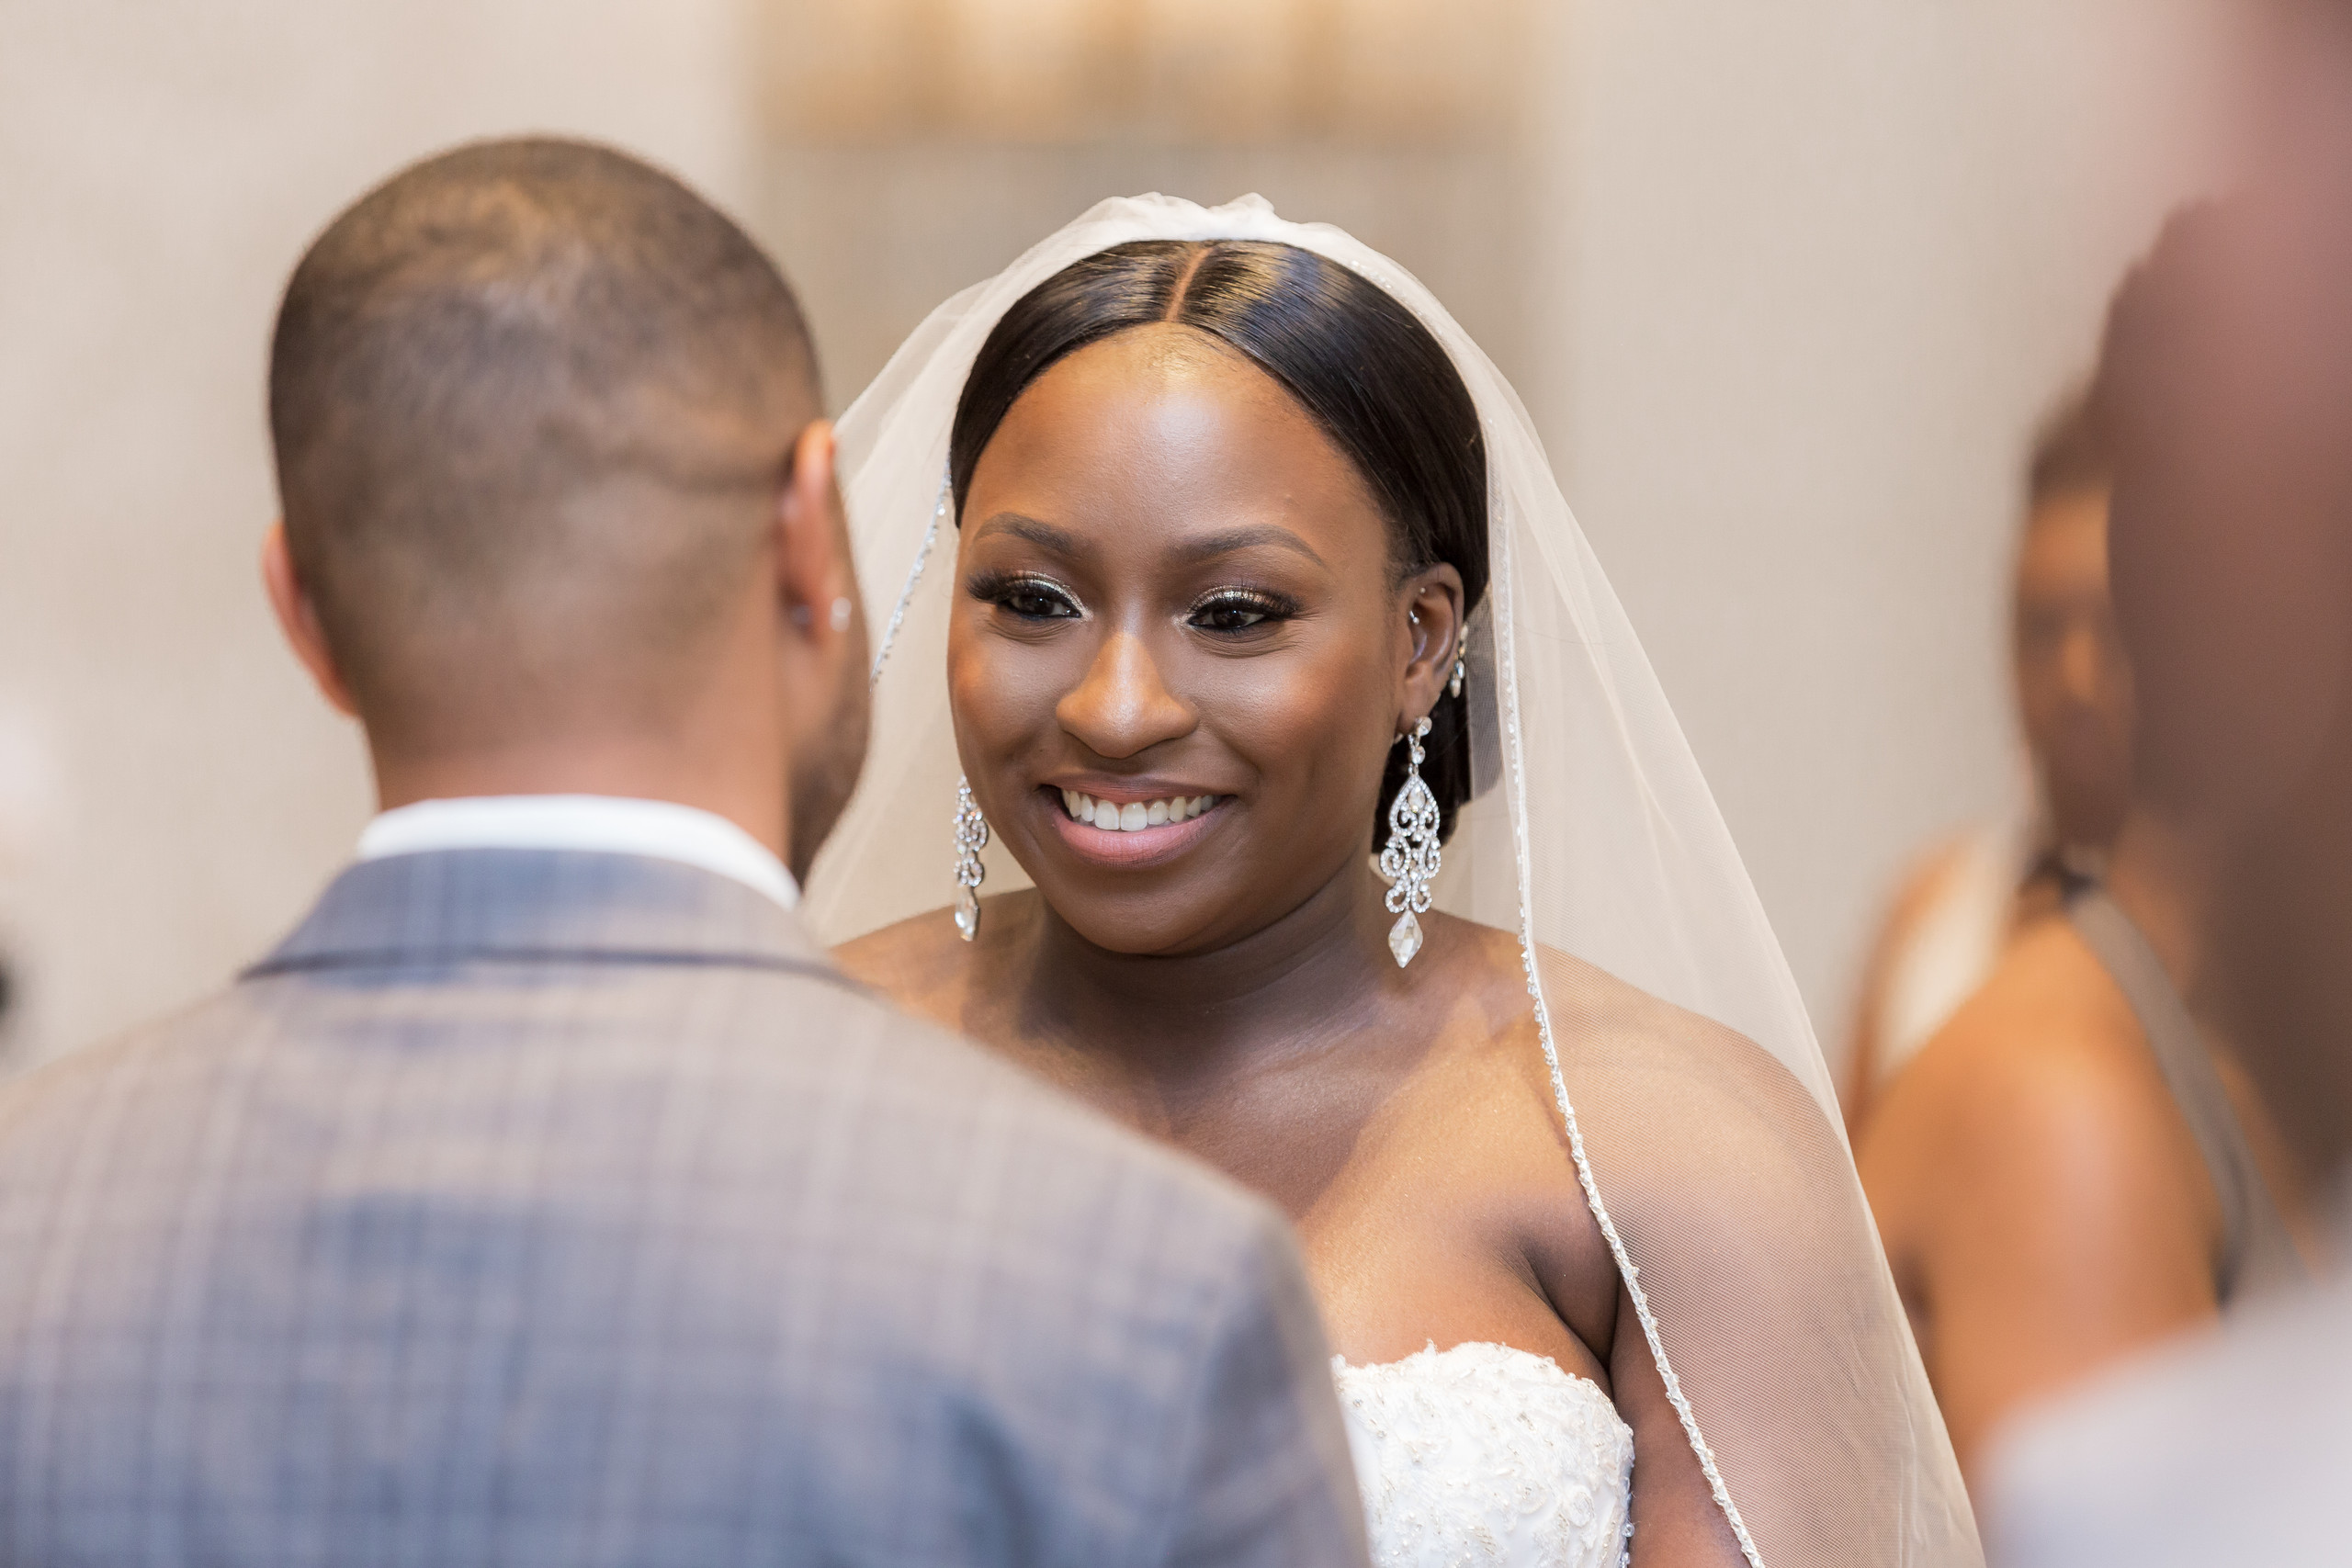 The bride gazing into her groom's eyes at the alter during the wedding ceremony at the Hilton Main in Norfolk, Virginia.